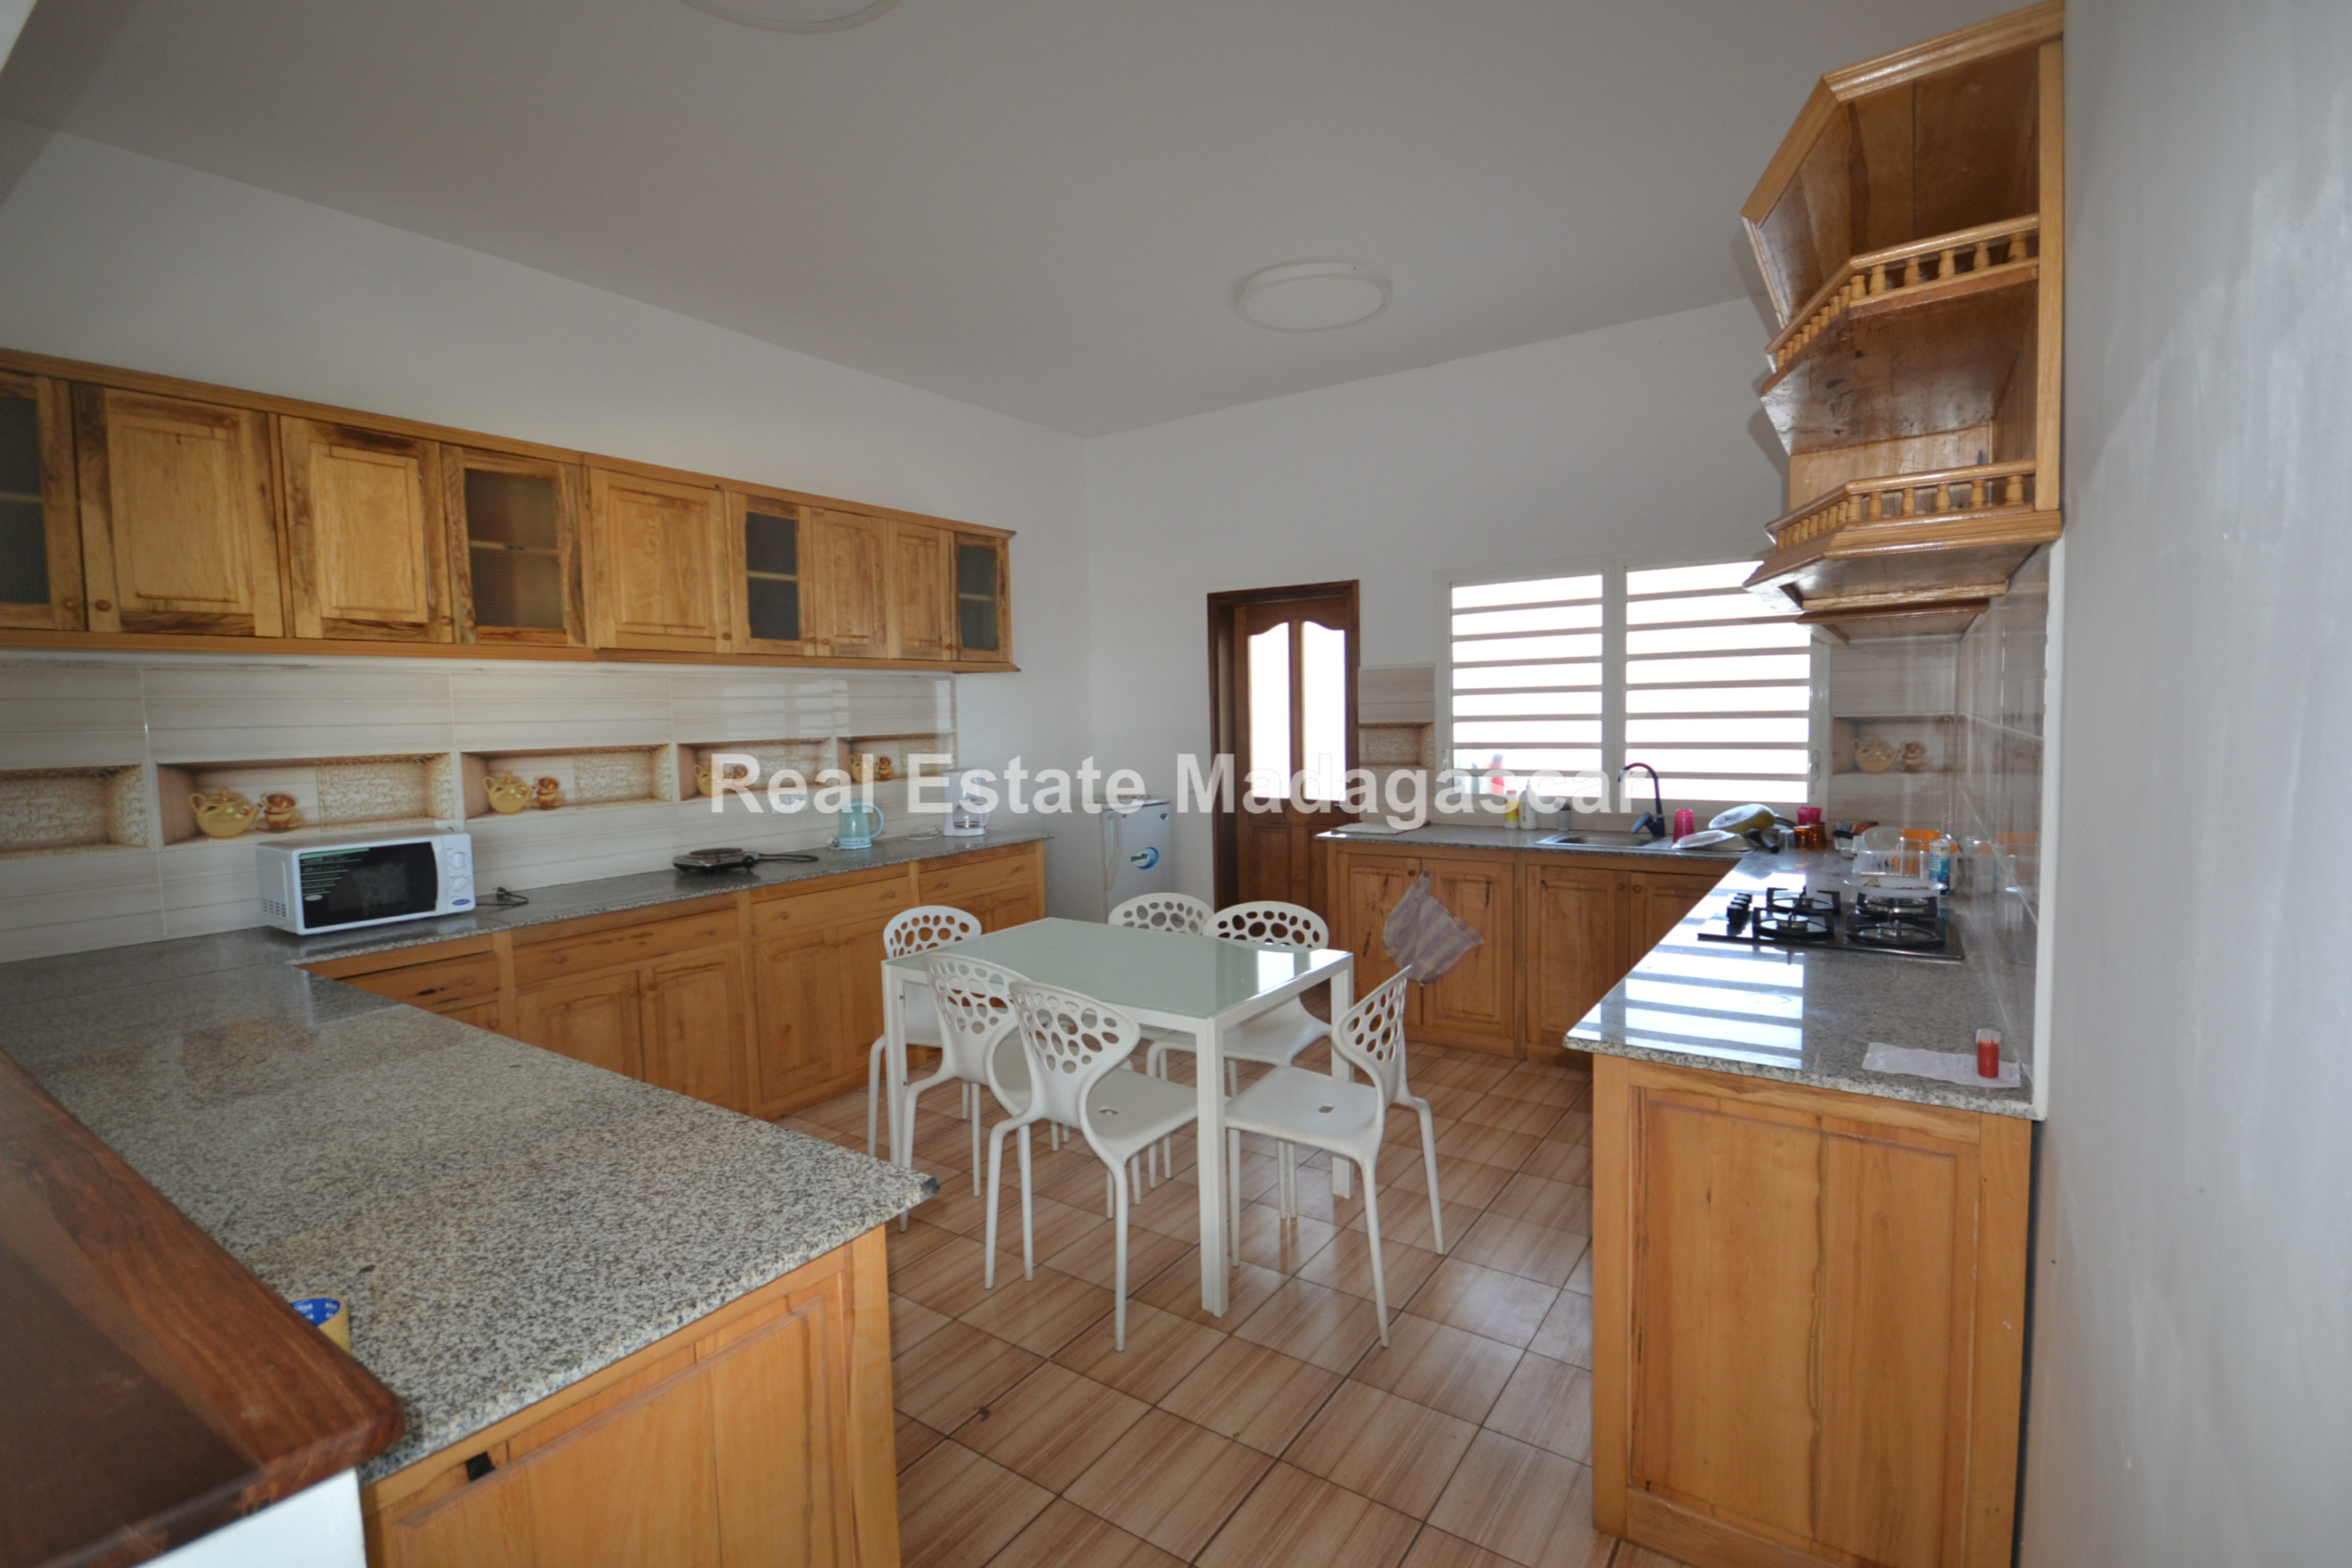 unfurnished-apartment-for-rent-2.jpg